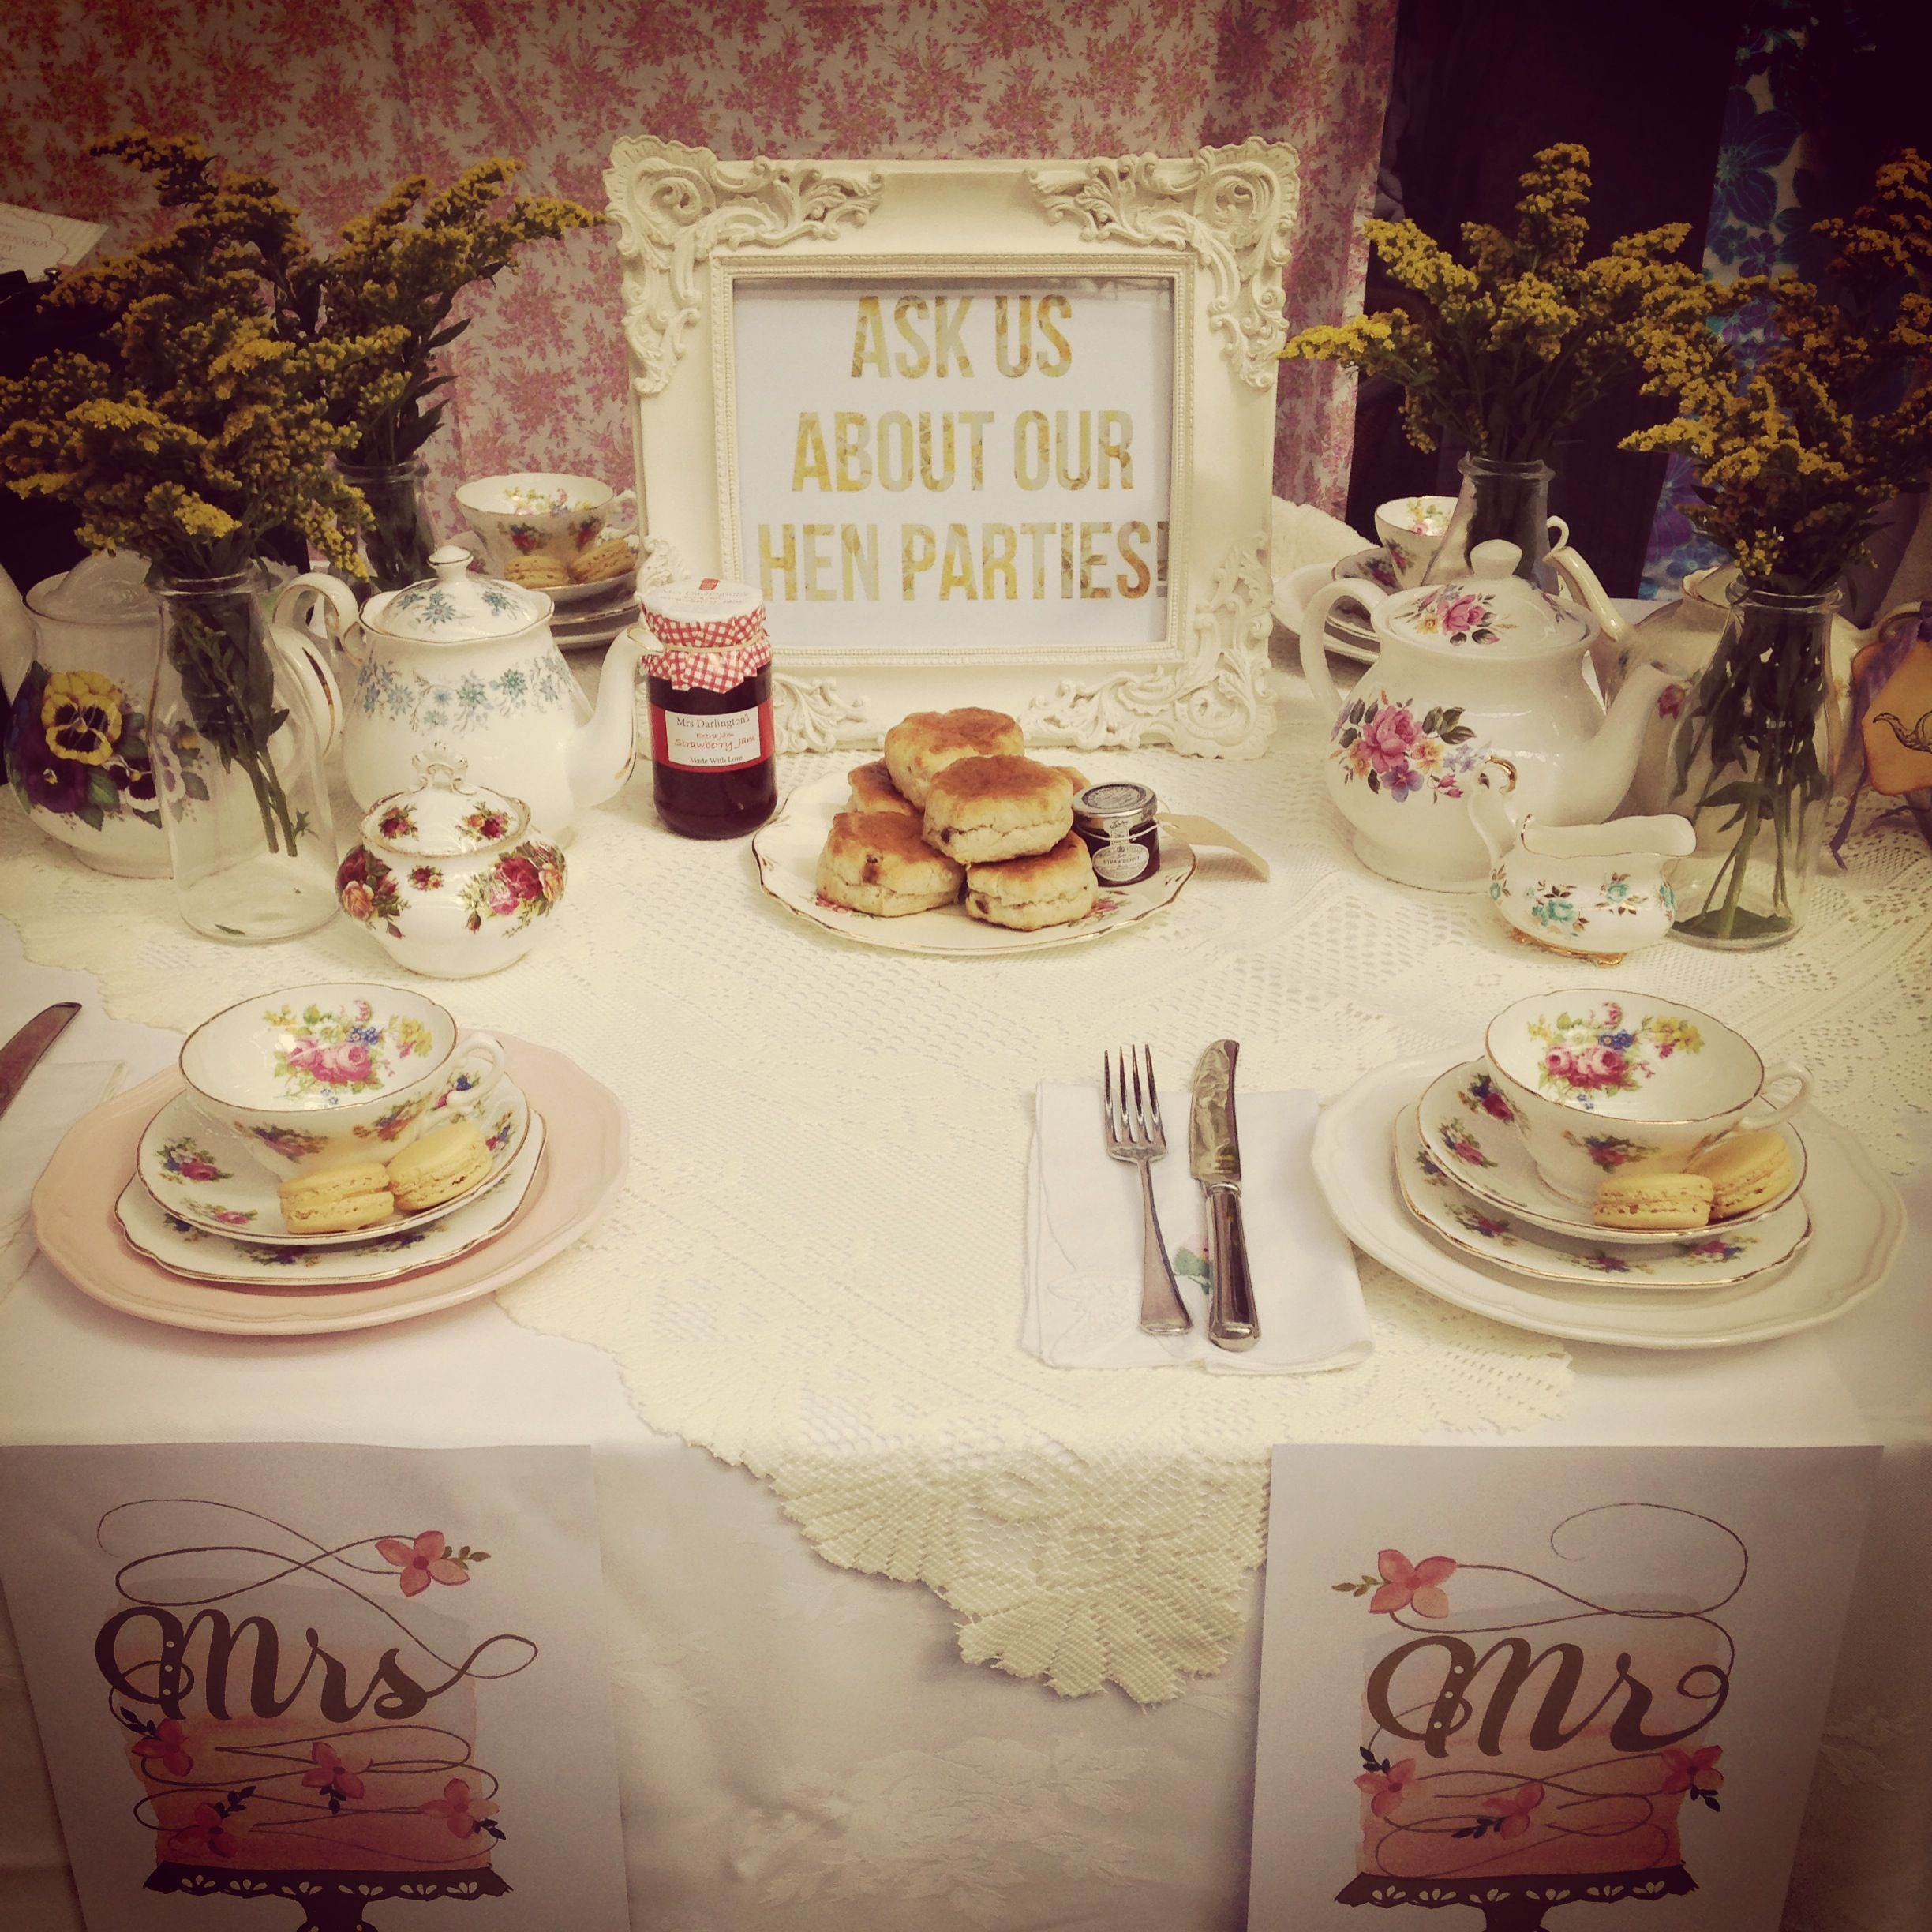 Our table setting at the Vintage wedding fair!